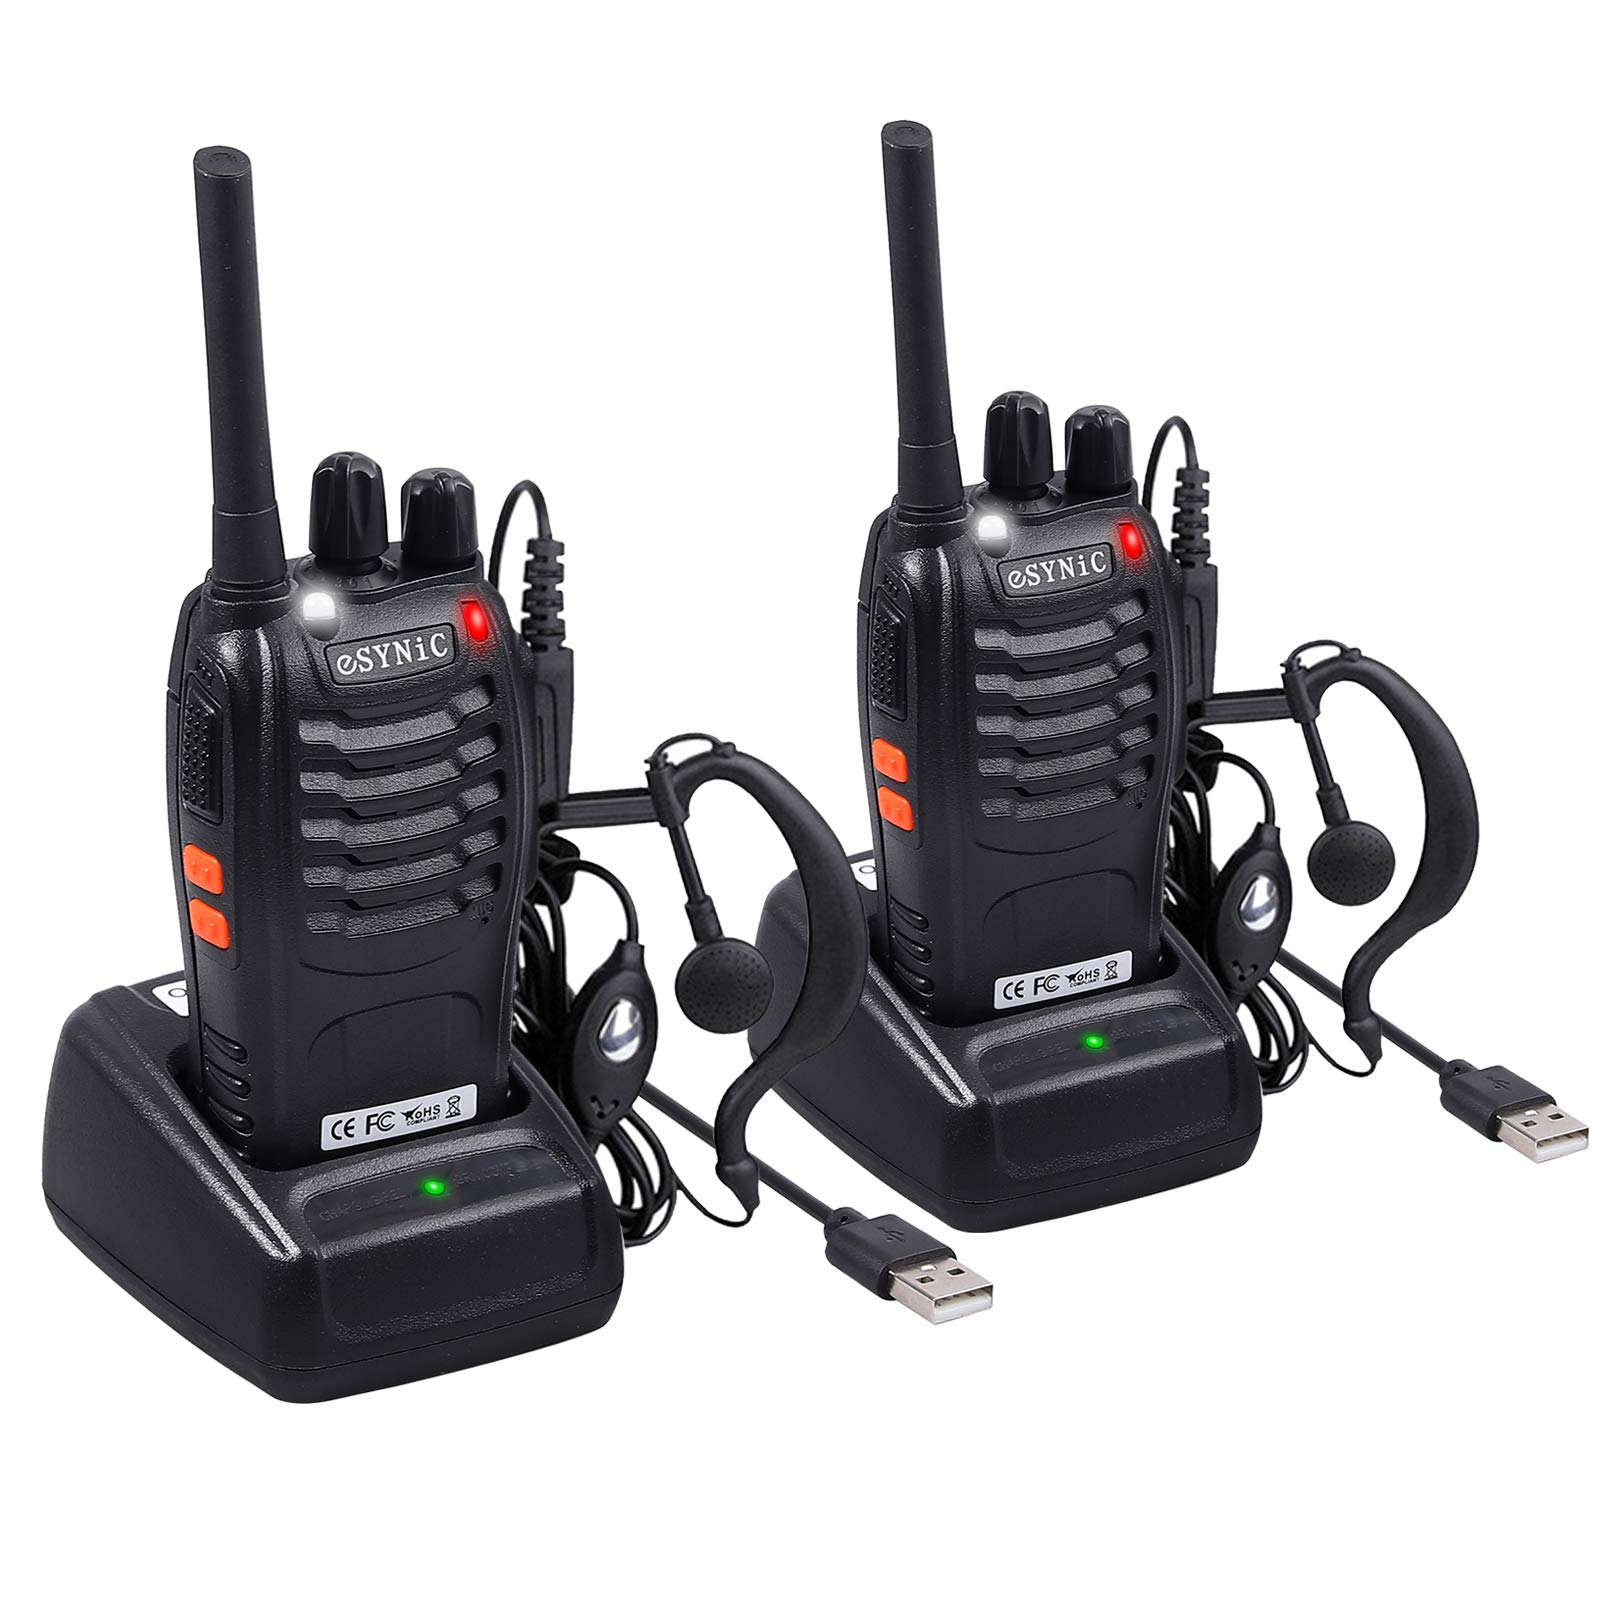 eSynic Rechargeable Walkie Talkies with Earpieces 2pcs Long Range Two-Way Radios 16 Channel UHF USB Cable Charging Walky Talky Handheld Transceiver with Flashlight by eSynic